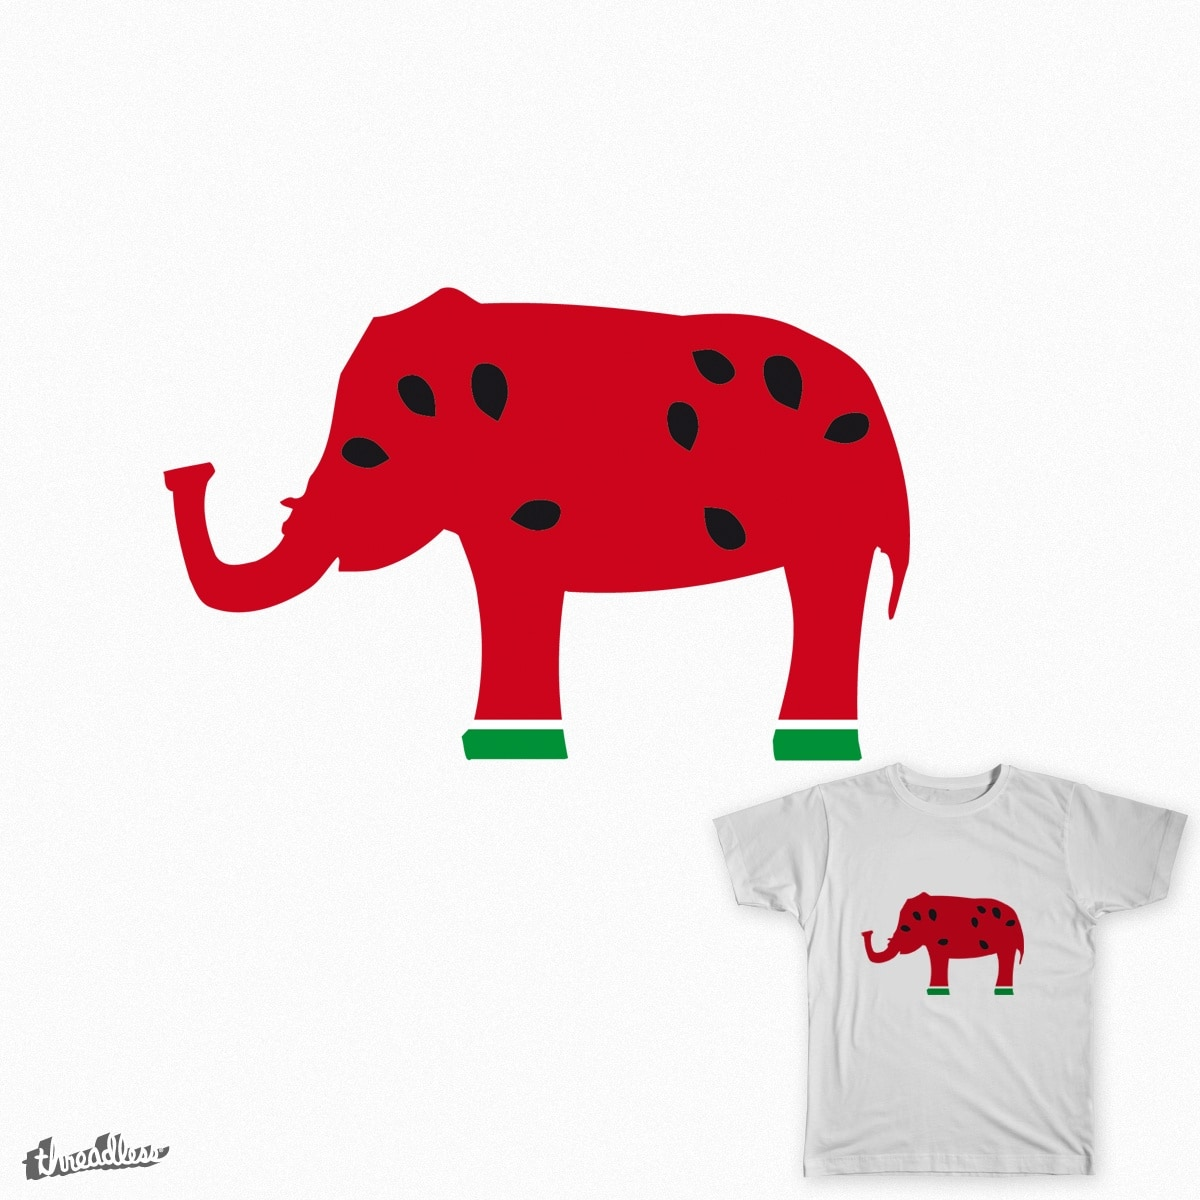 Eliphant by eliocumitini on Threadless